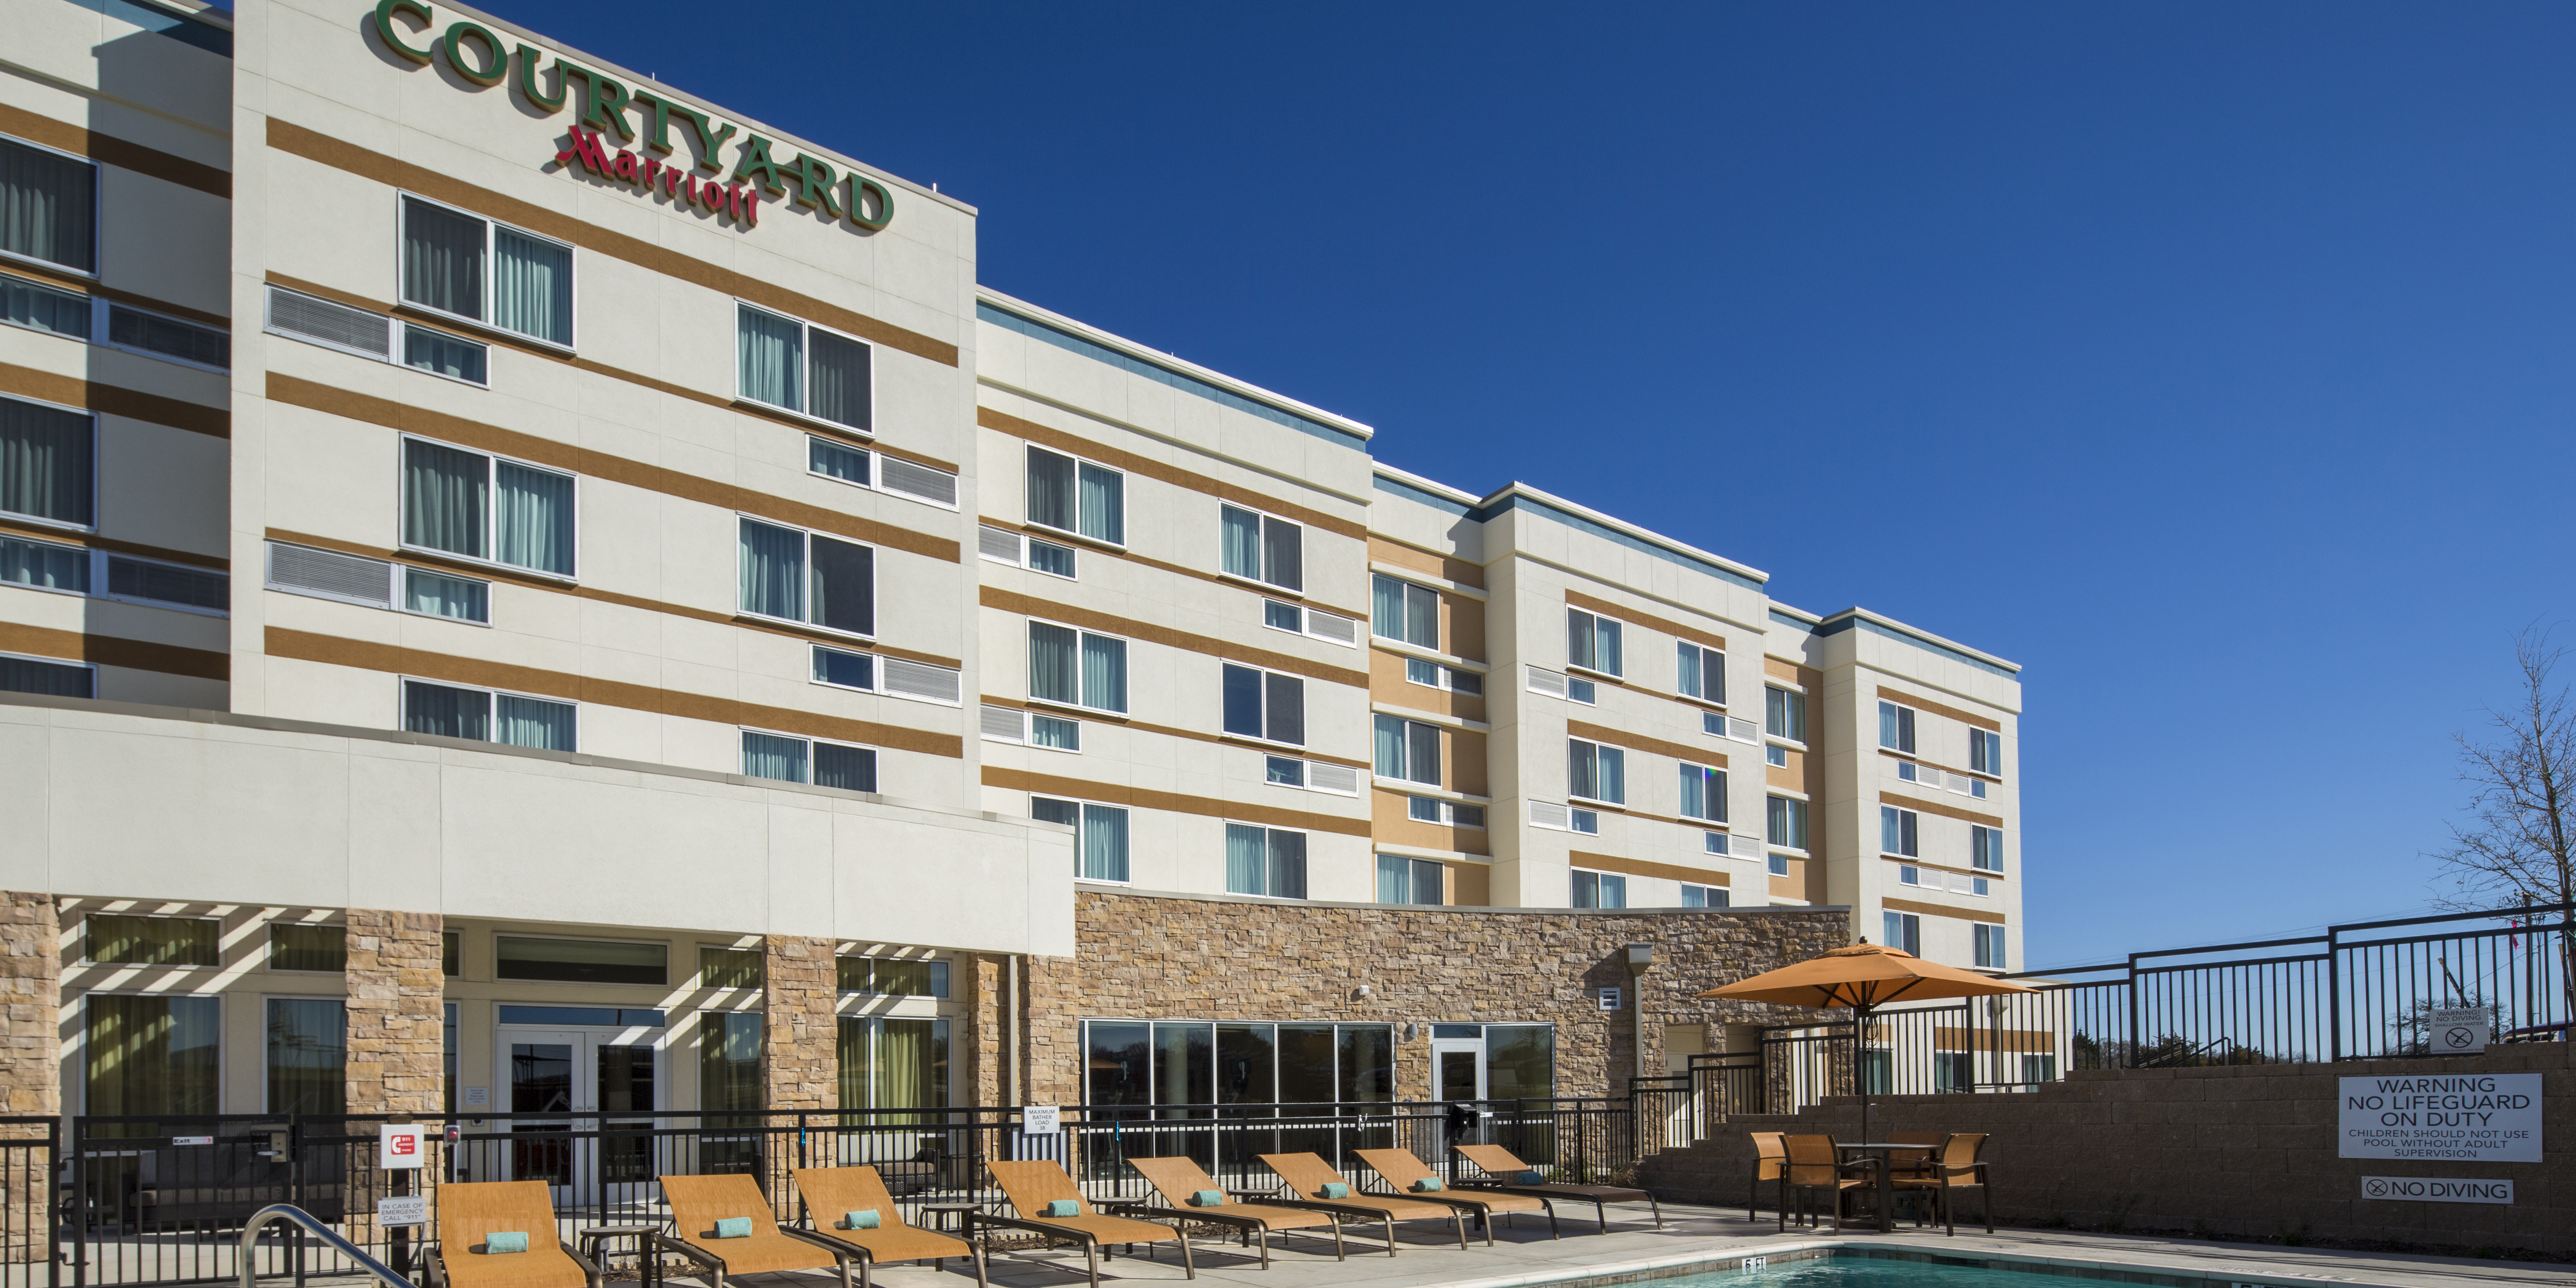 Texas Western Hospitality Acquires Management Contract For Courtyard Dallas Midlothian at Midlothian Conference Center